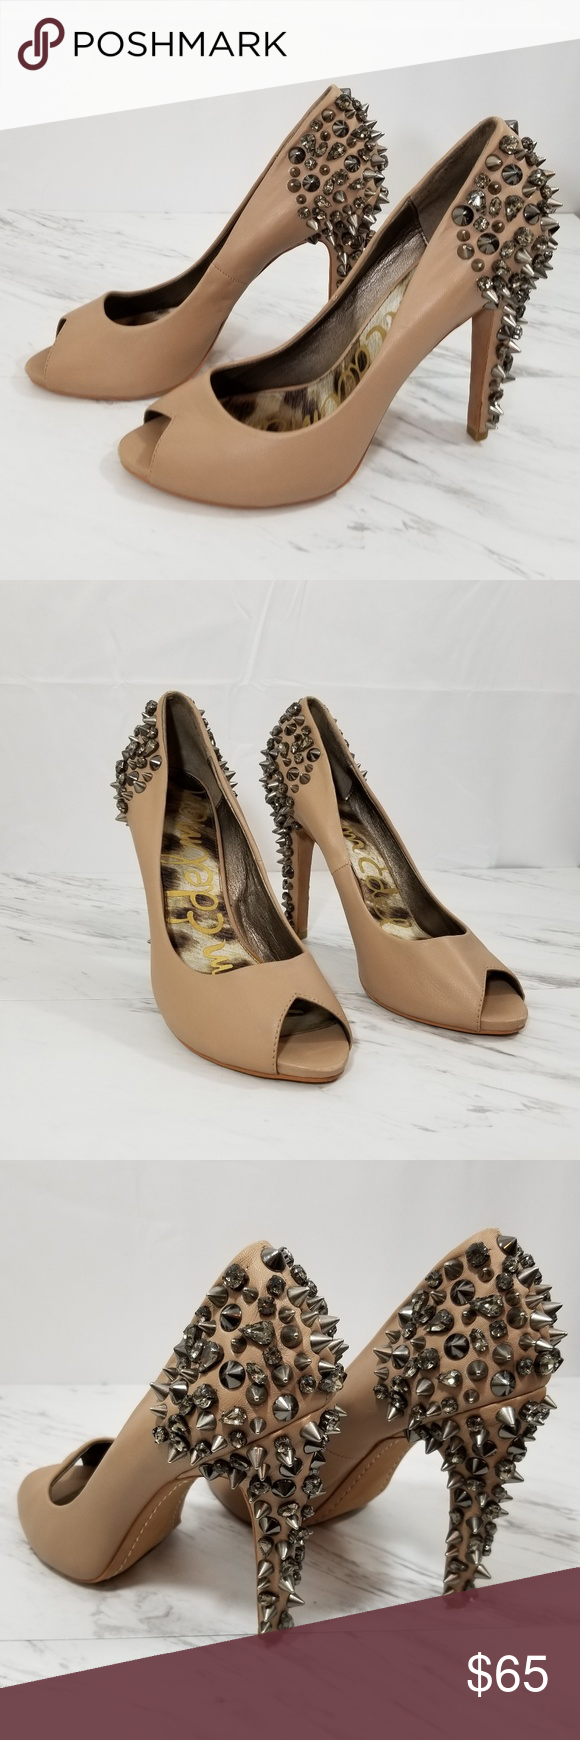 801bd63bb Sam Edelman Lorissa Nude Leather Spiked Heel Pumps Sam Edelman Lorissa Nude  Leather Pumps. There is no sign that these have ever been worn.